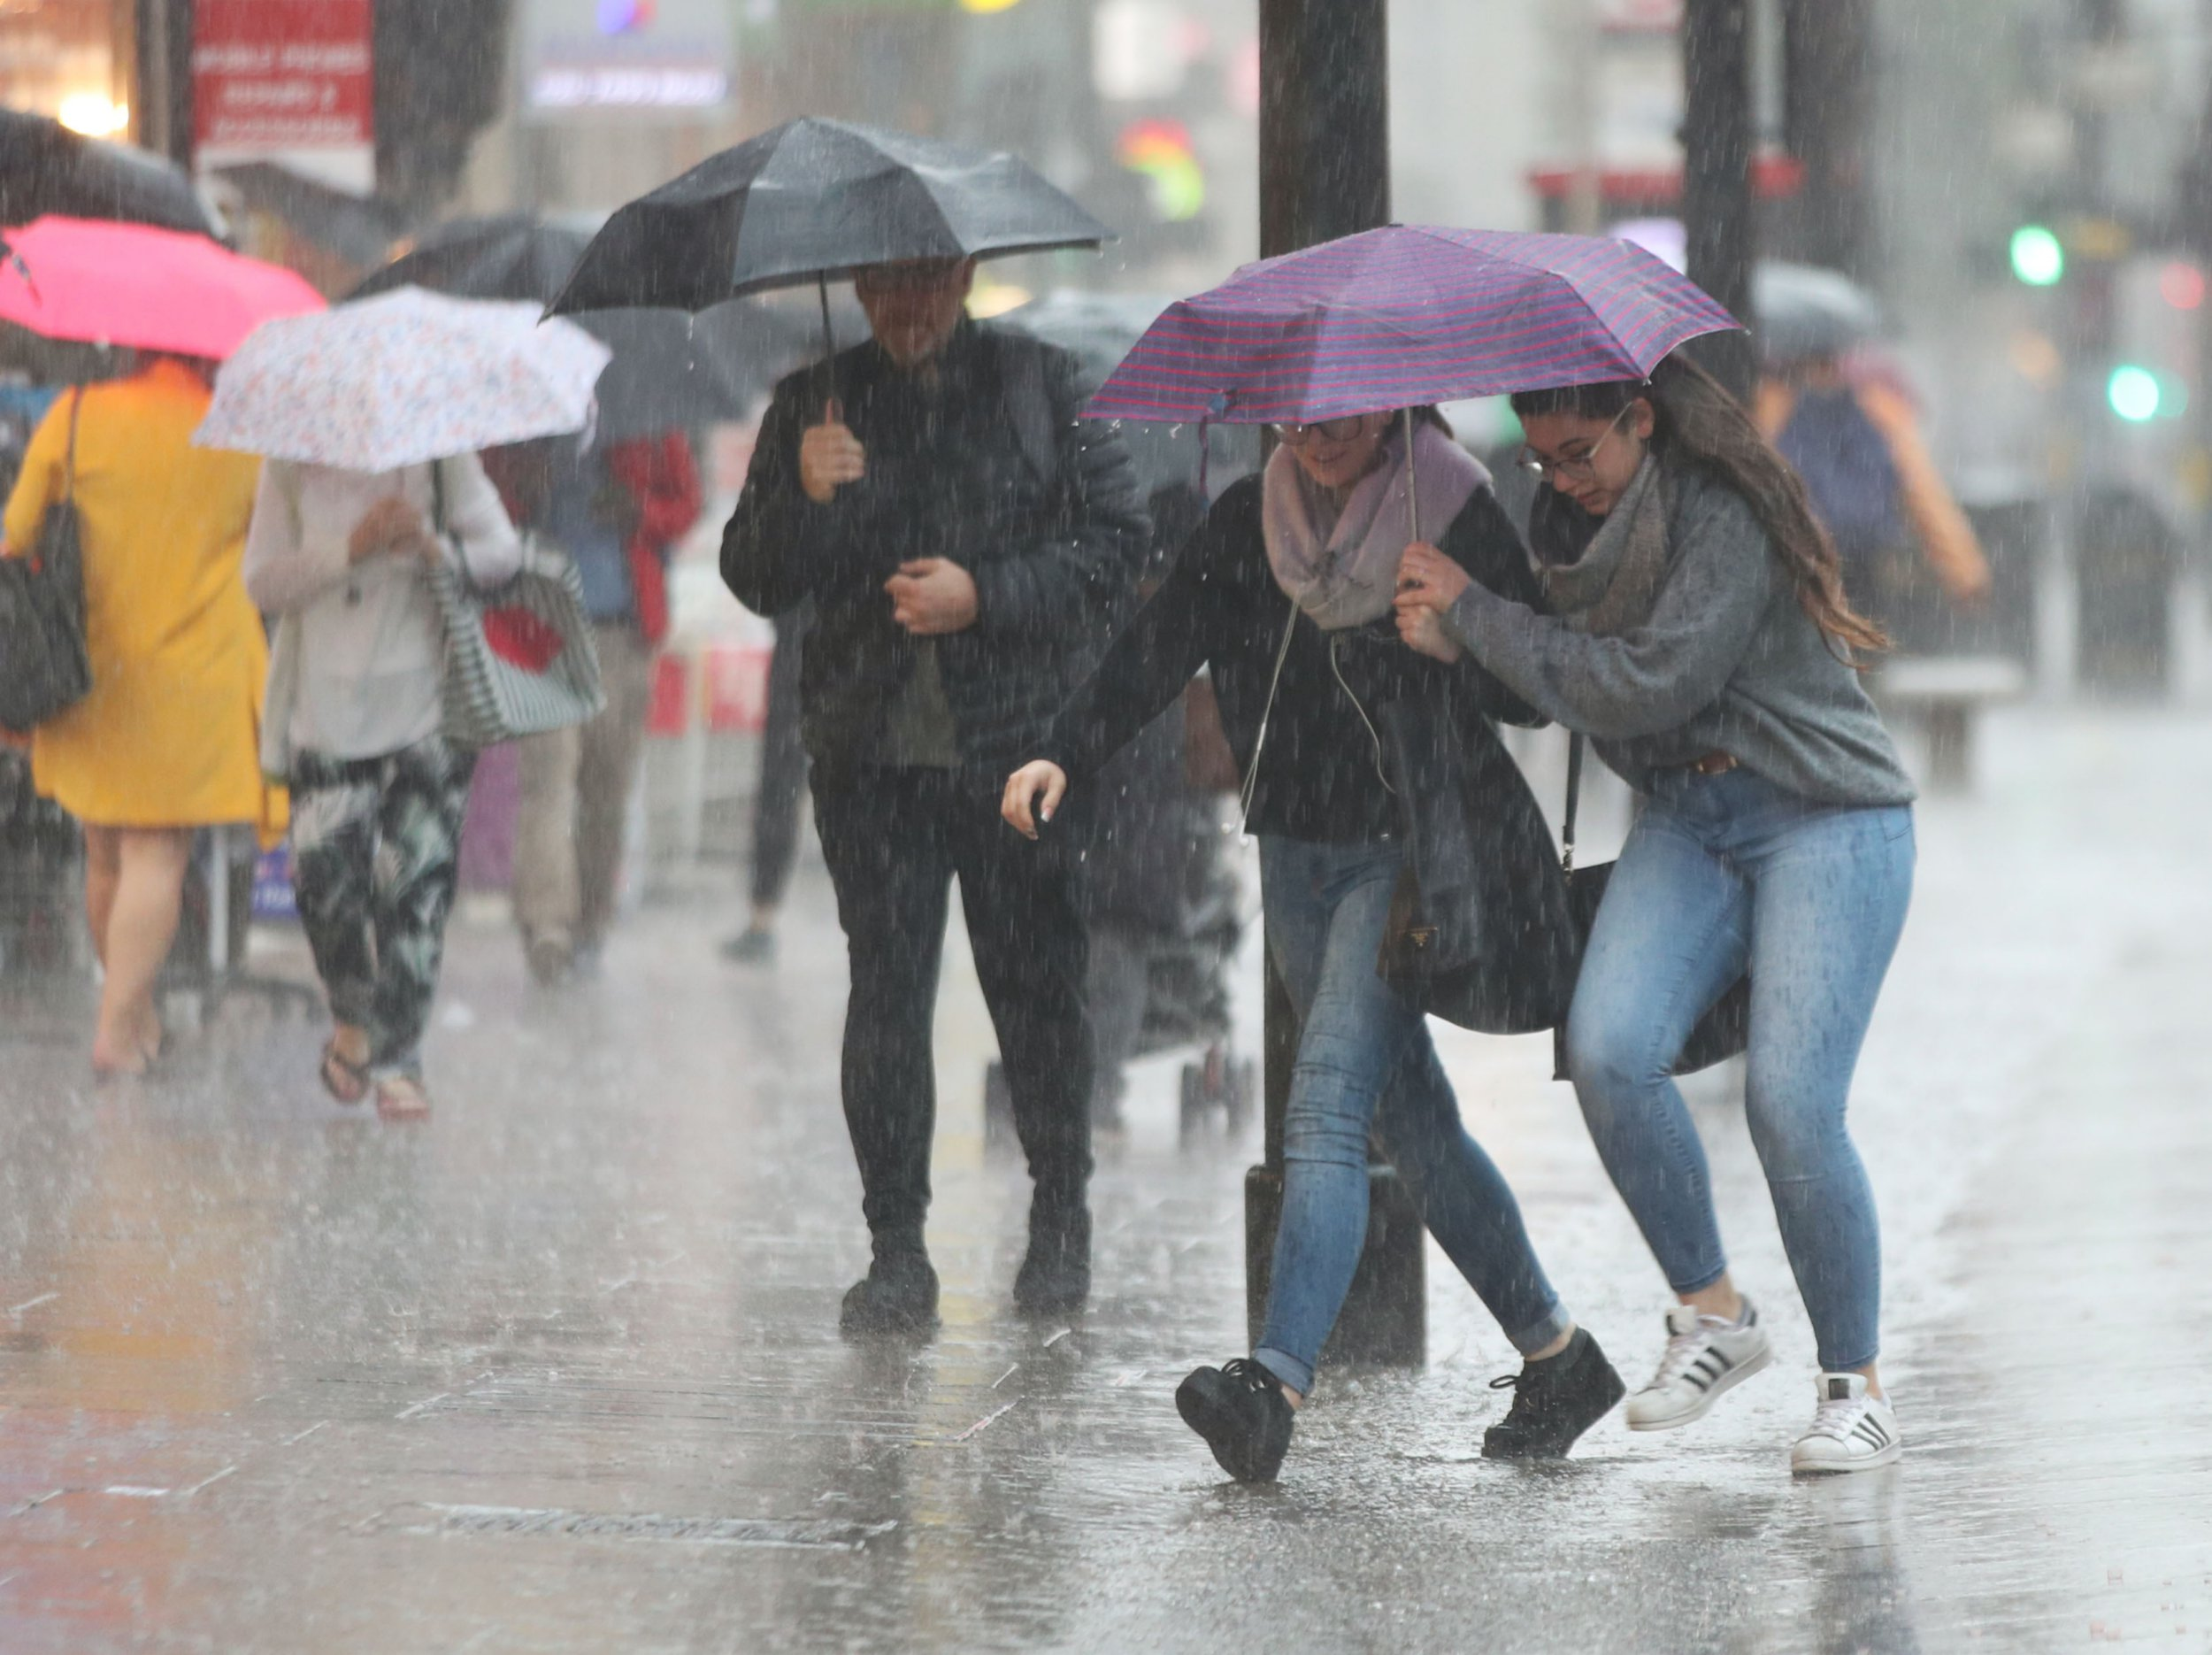 People caught in the rain on Oxford Street, central London as forecasters have warned of the risk of more flooding, travel disruption and power cuts with thunderstorms set to rumble on. PRESS ASSOCIATION Photo. Picture date: Tuesday May 29, 2018. Those off for half-term have been told to beware of potential flash floods and sudden worsening of visibility amid heavy rain and balmy temperatures. The Met Office has issued a yellow alert warning of thundery rain or showers which could bring local flooding to parts of southern England and Wales through Tuesday and into Wednesday morning. Photo credit should read: Yui Mok/PA Wire